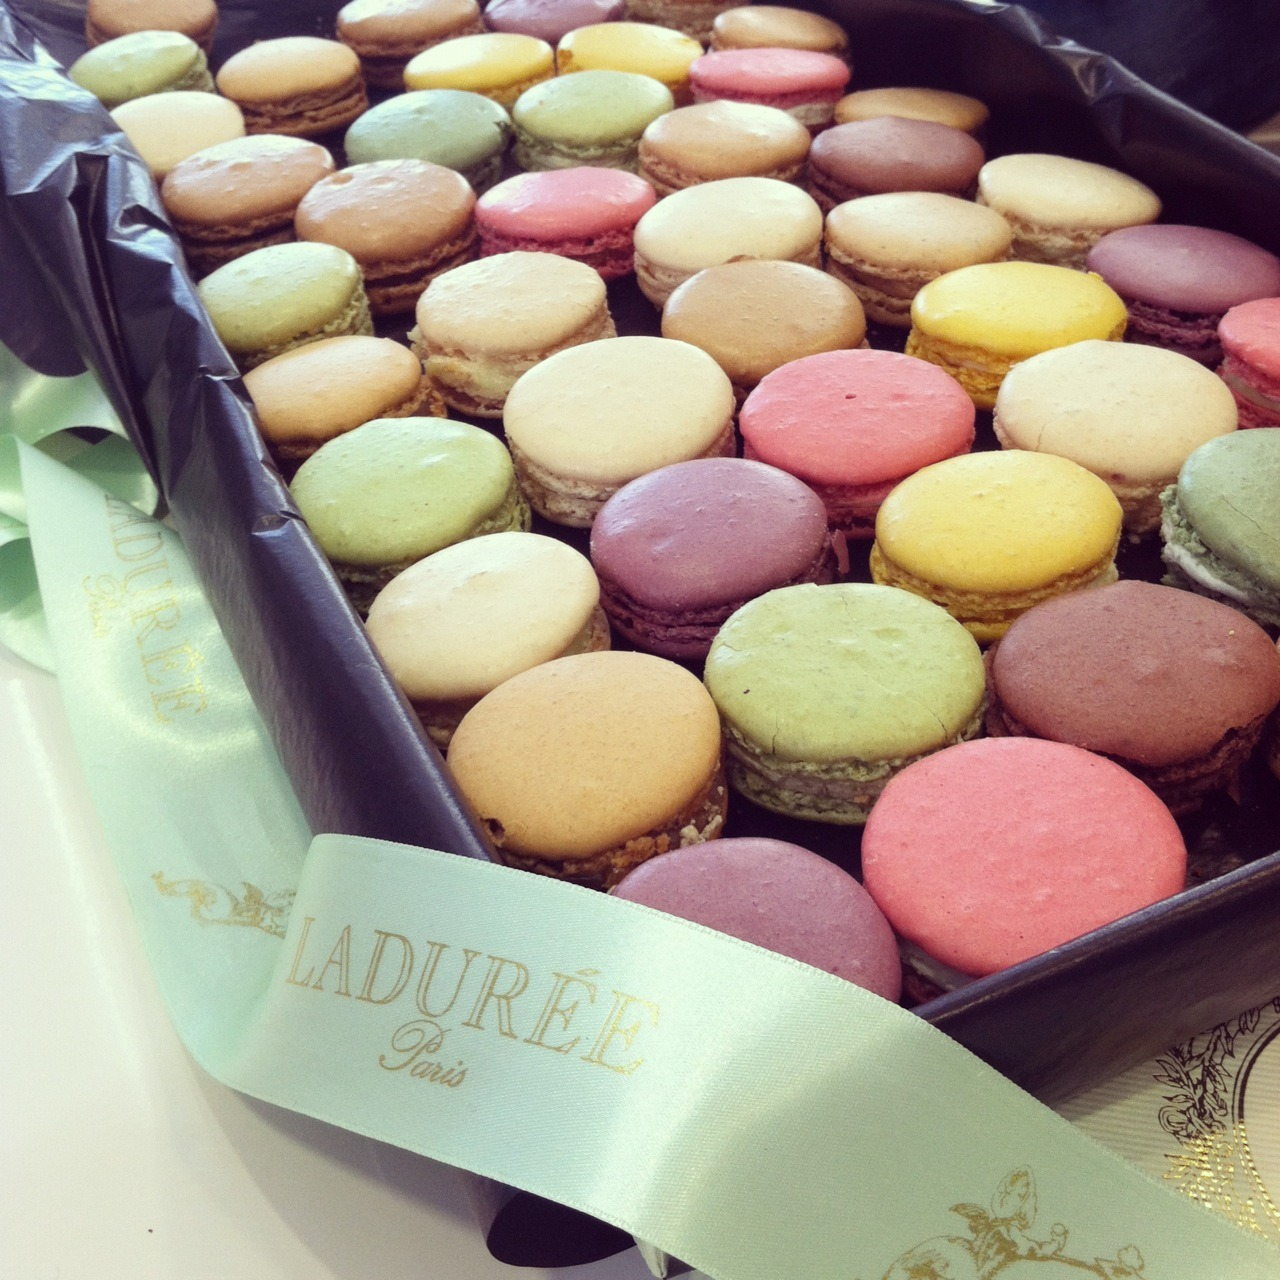 clubmonaco:   Ladurée Macaroons  It's always a treat to receive Ladurée macaroons in the office. The colors are delightful!